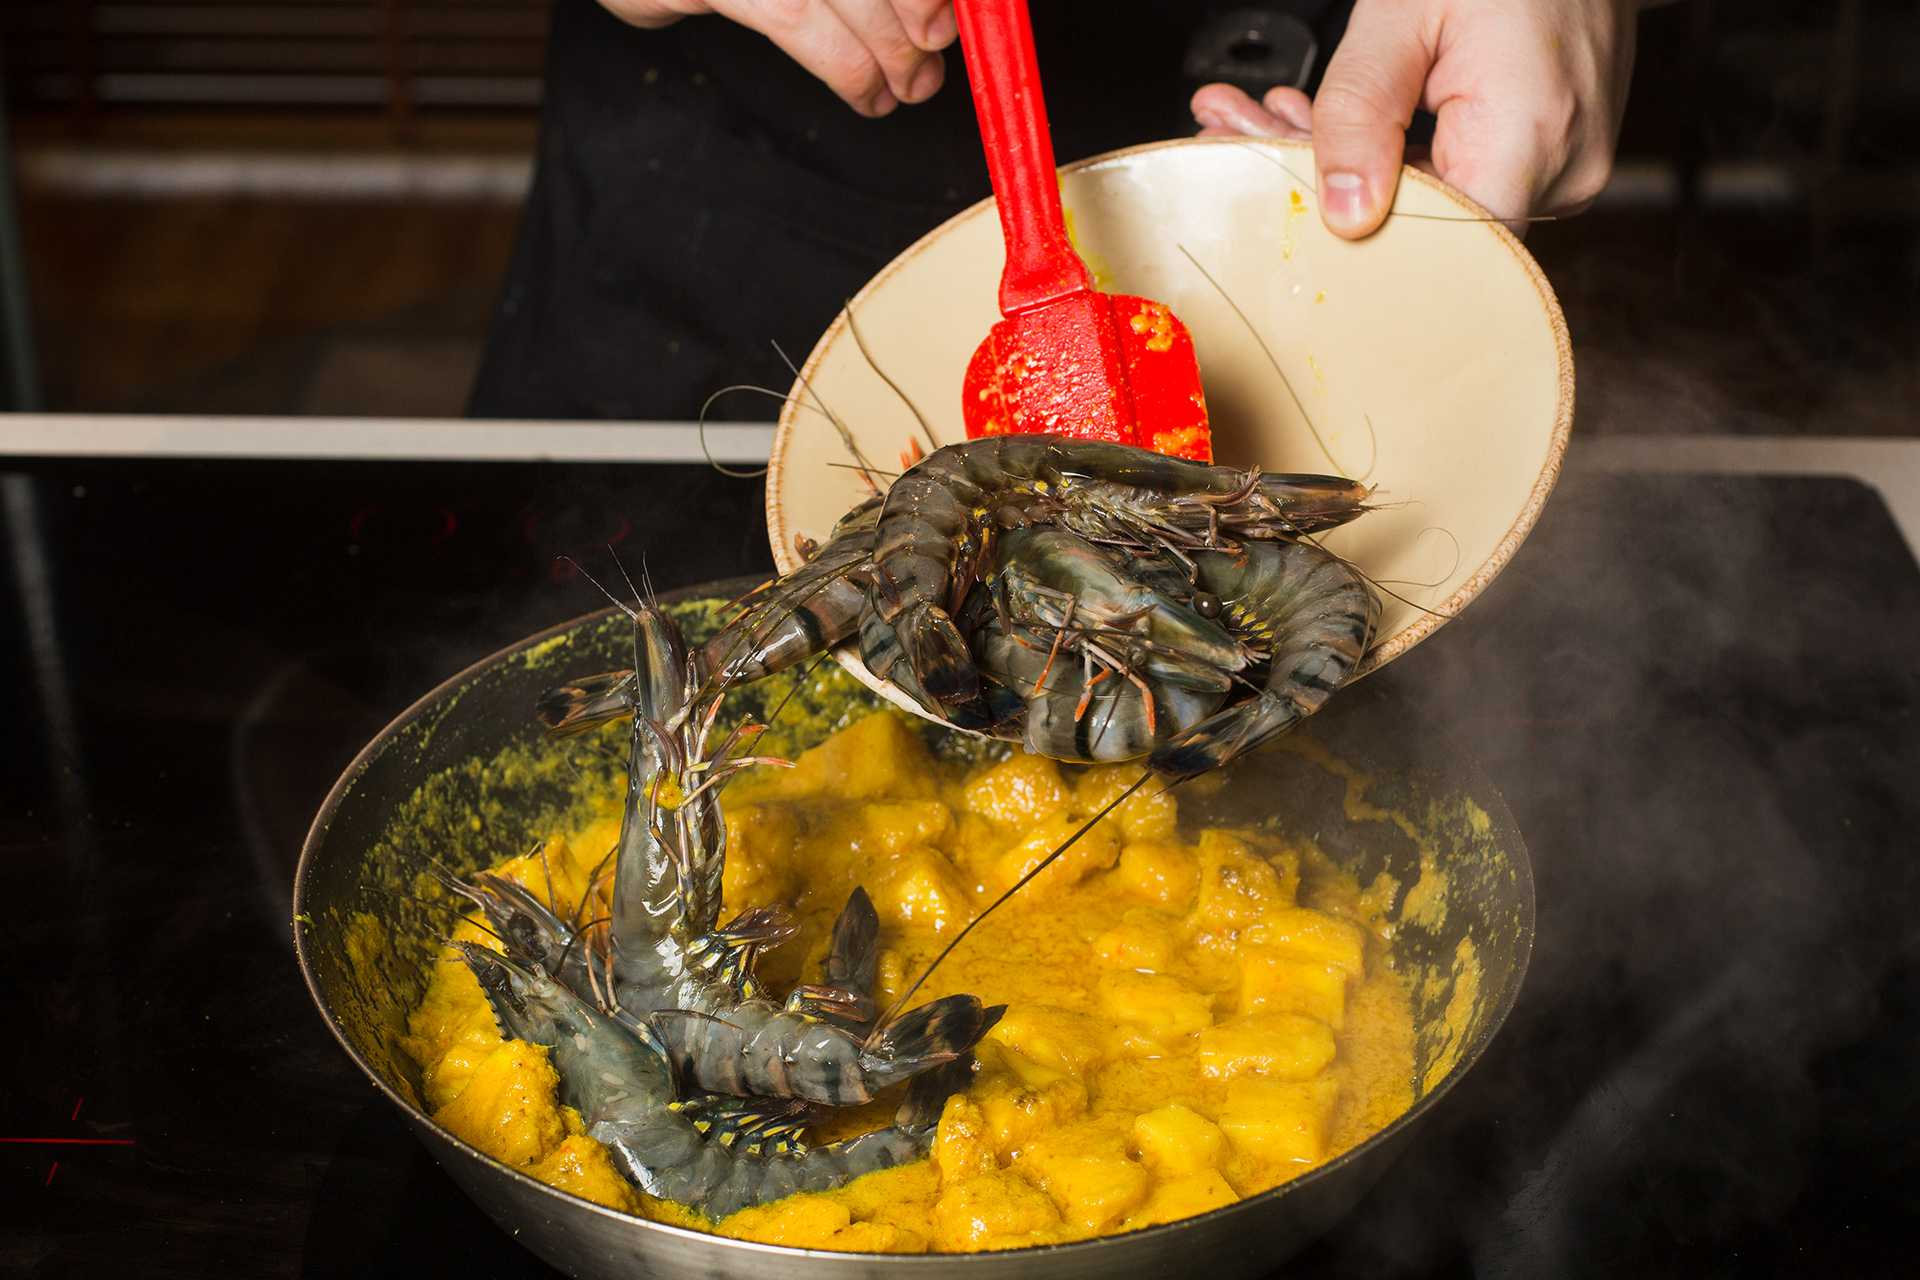 Cook the prawns and season